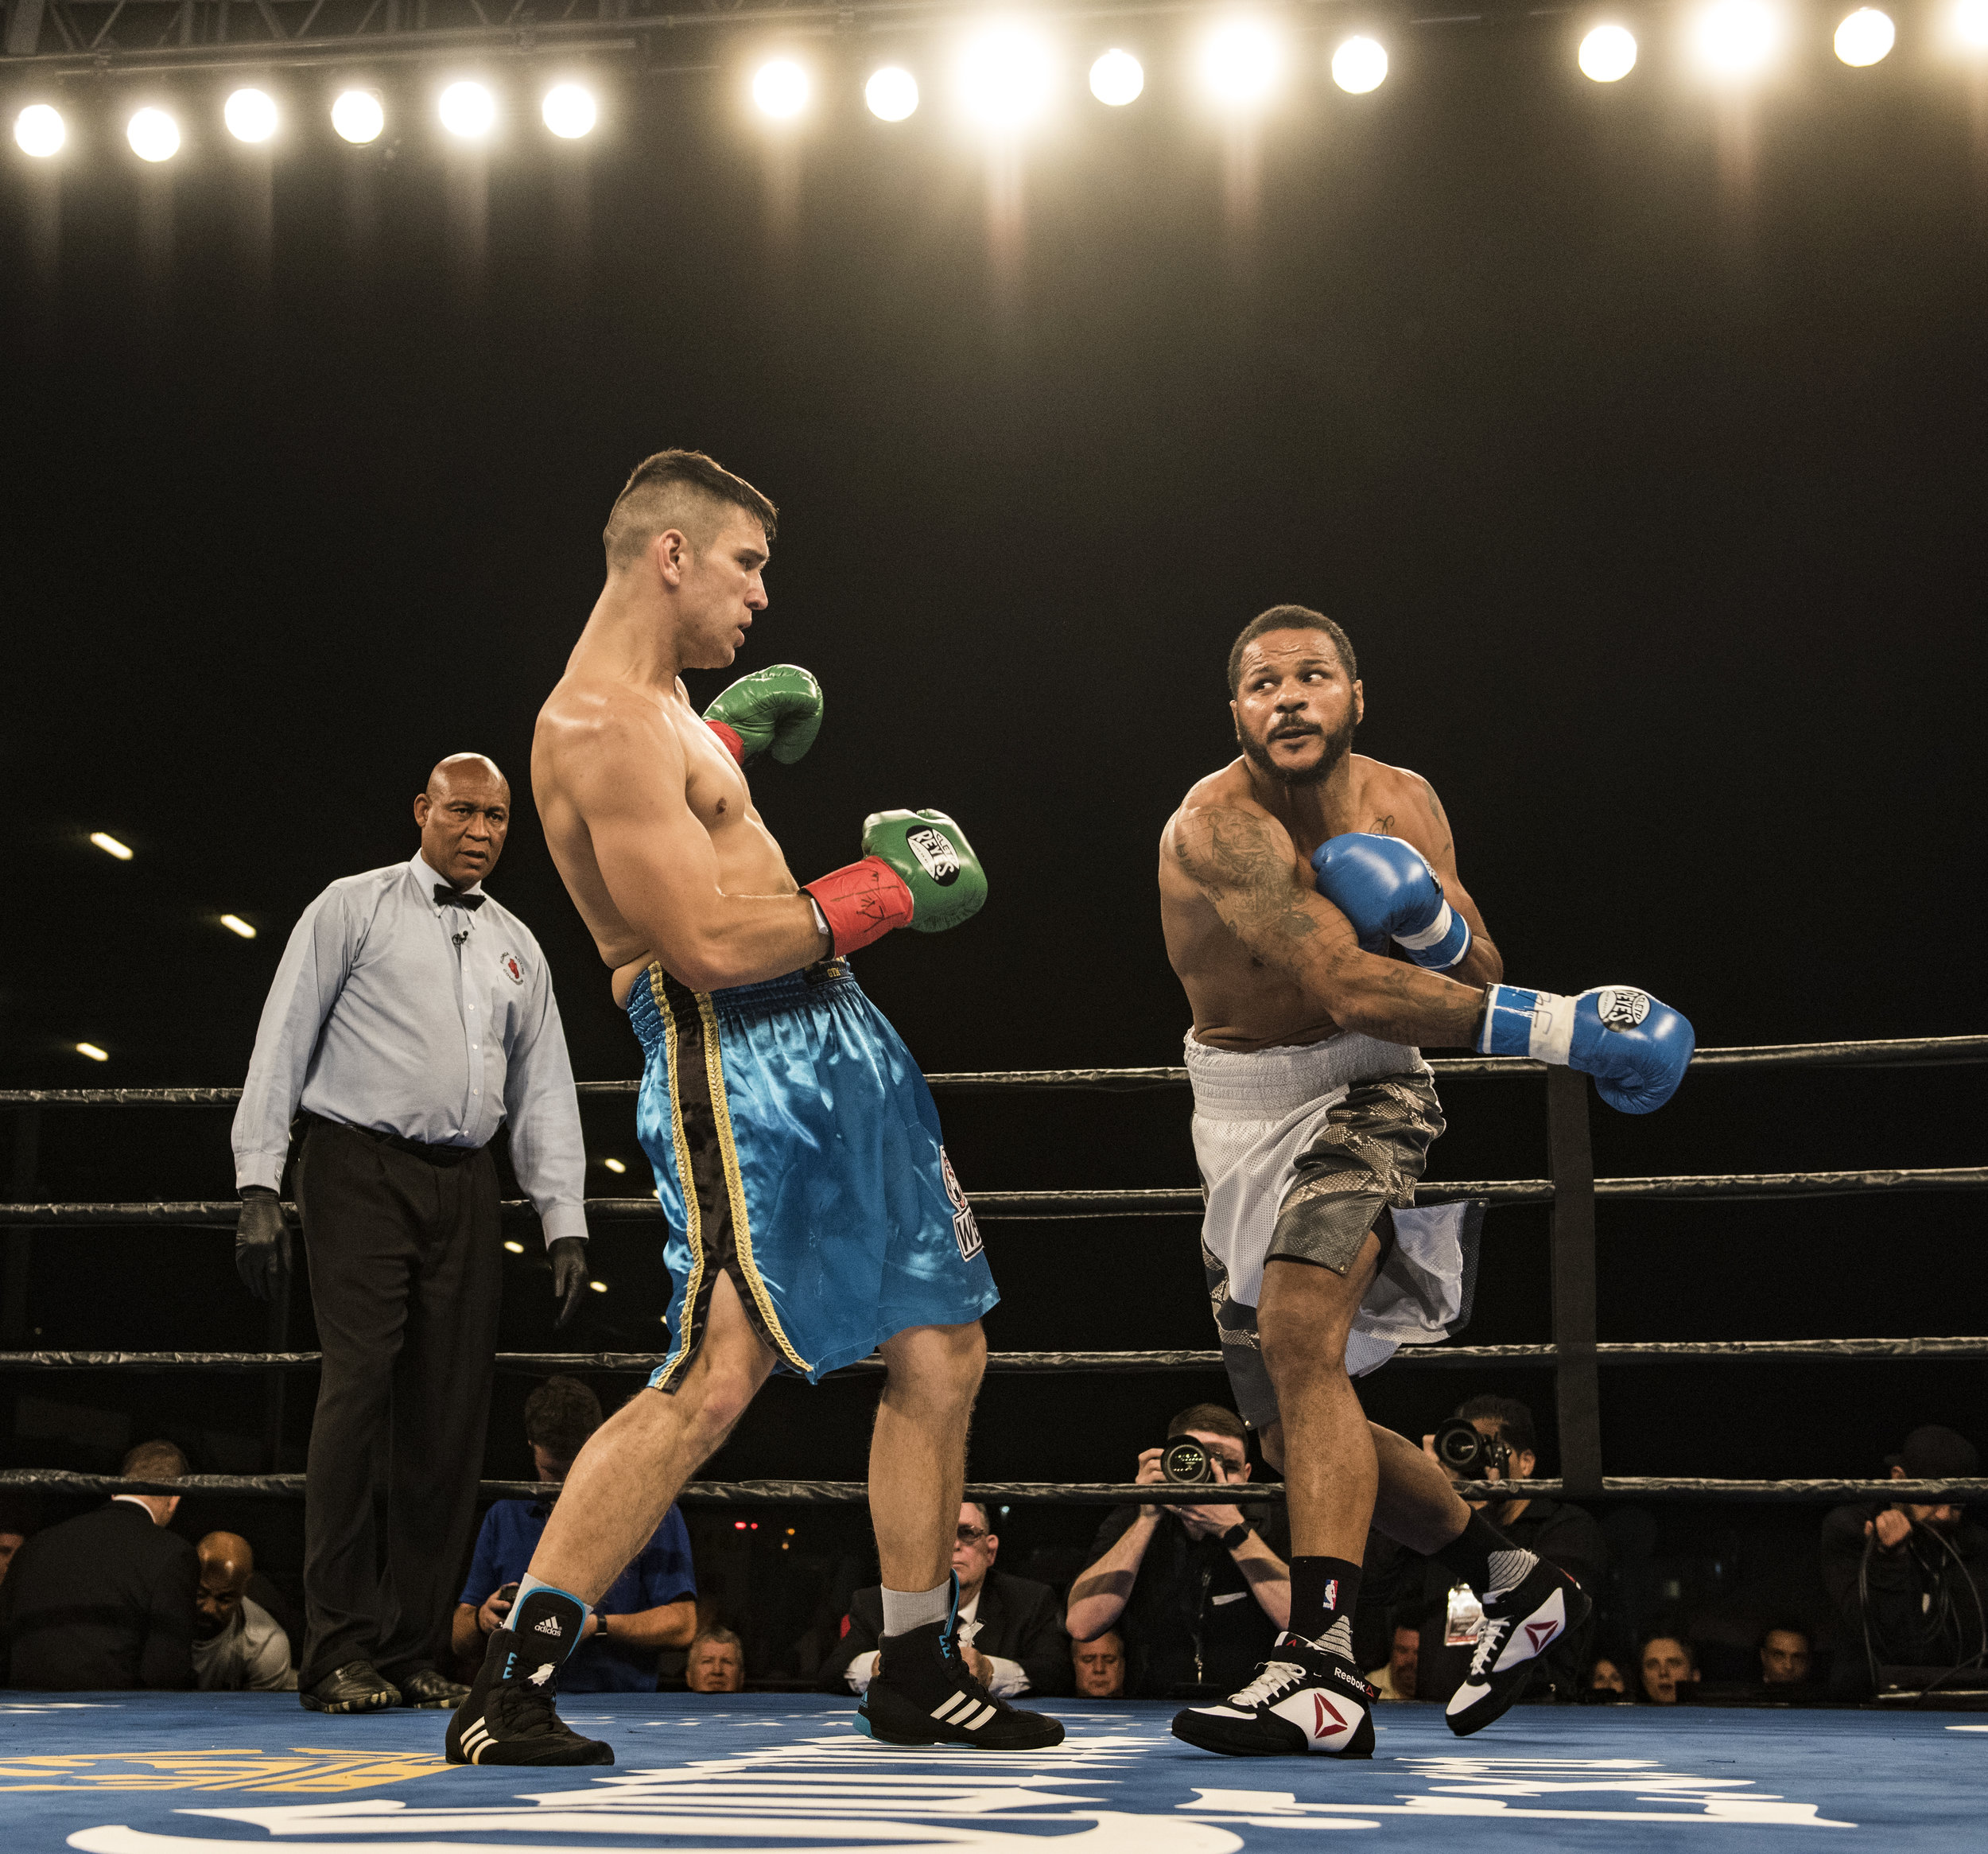 Anthony Dirrell (right) misses with a power punch during his fight against Nobert Nemesapati at Hialeah Casino Park.